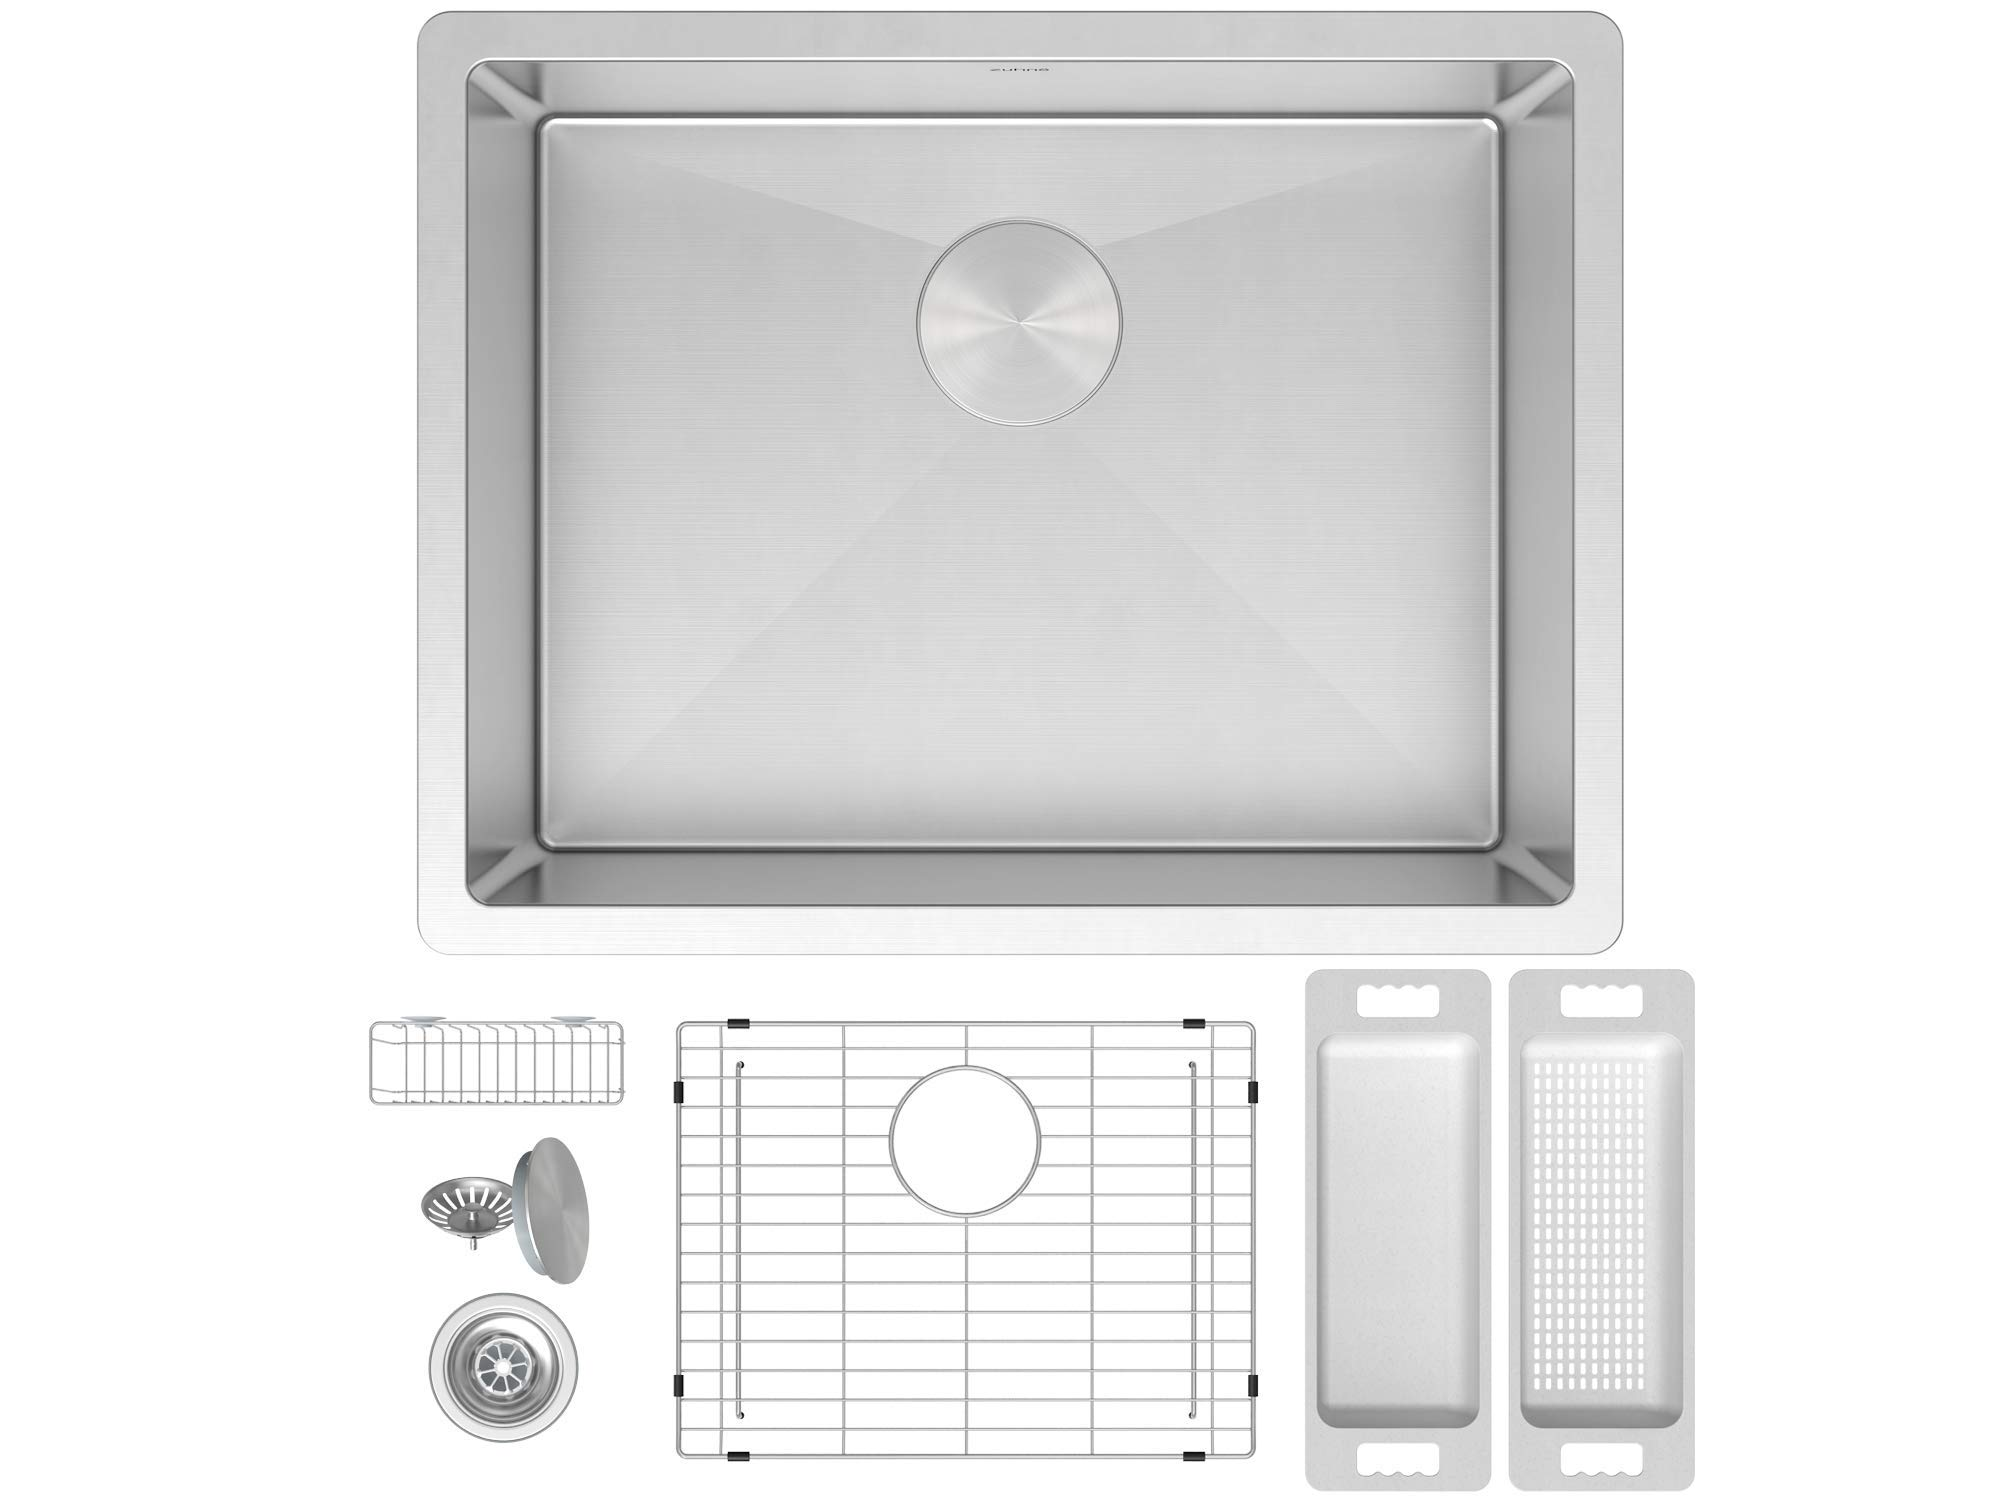 ZUHNE Modena 21 x 18 Inch Single Bowl Under Mount 16 Gauge Stainless Steel Kitchen Sink W. Grate Protector, Drain Strainer and Mounting Clips, Fits 24'' Cabinet